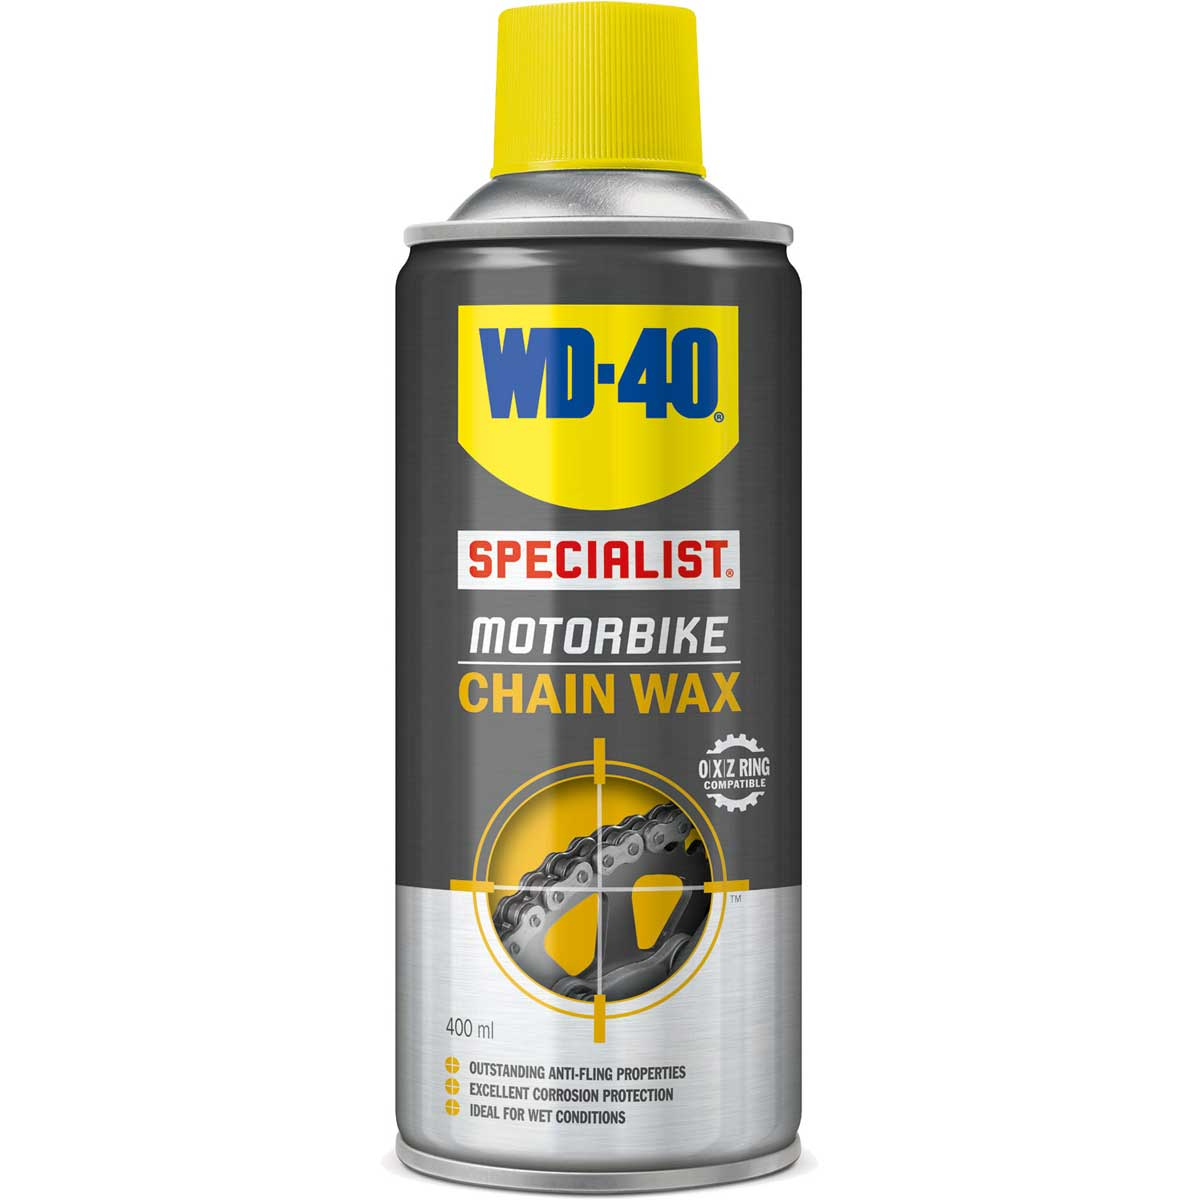 The WD40 Specialist Motorbike Chain Wax